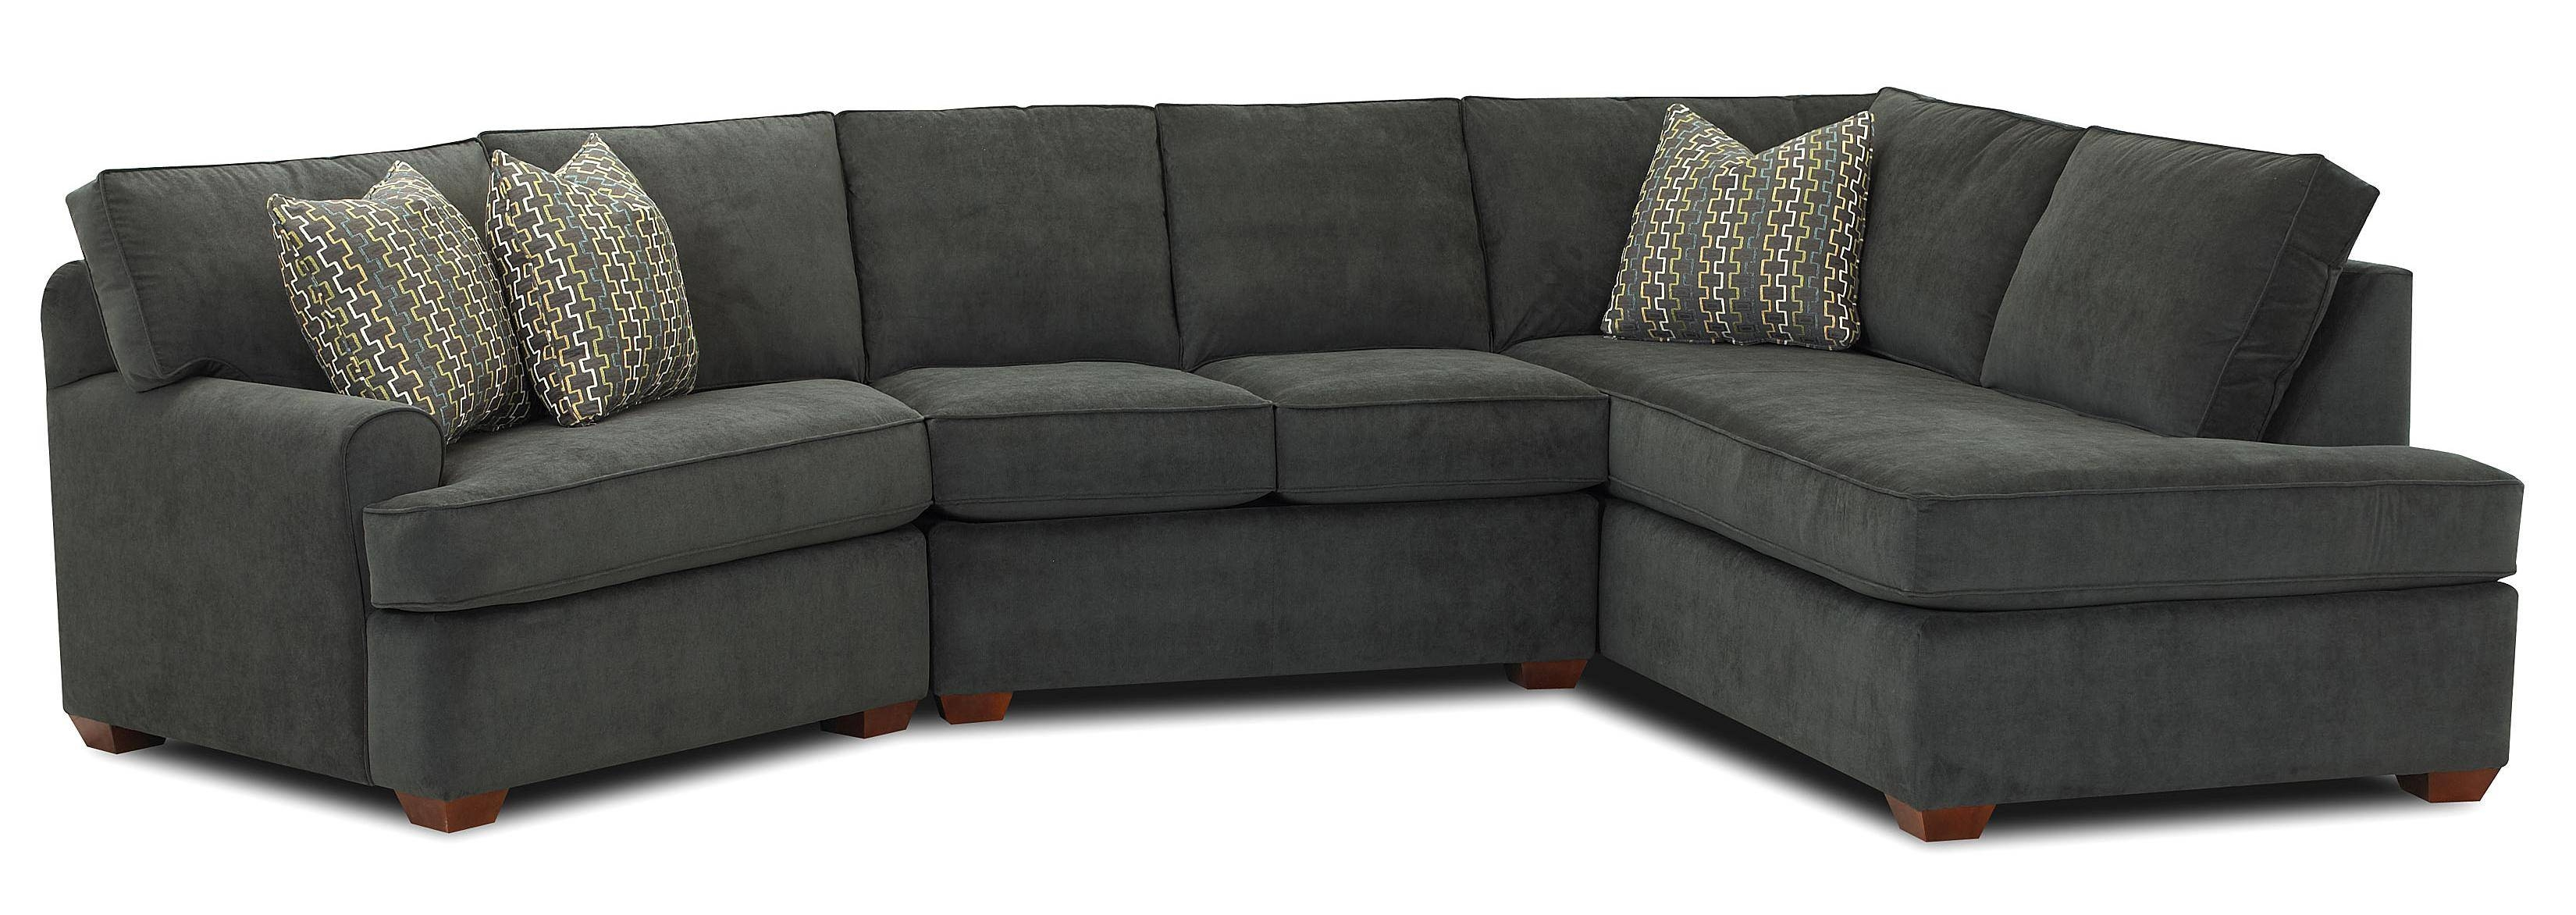 Fancy Sectional Sofas With Chaise 39 Sofas And Couches Ideas With Within Soft Sectional Sofas (View 9 of 30)